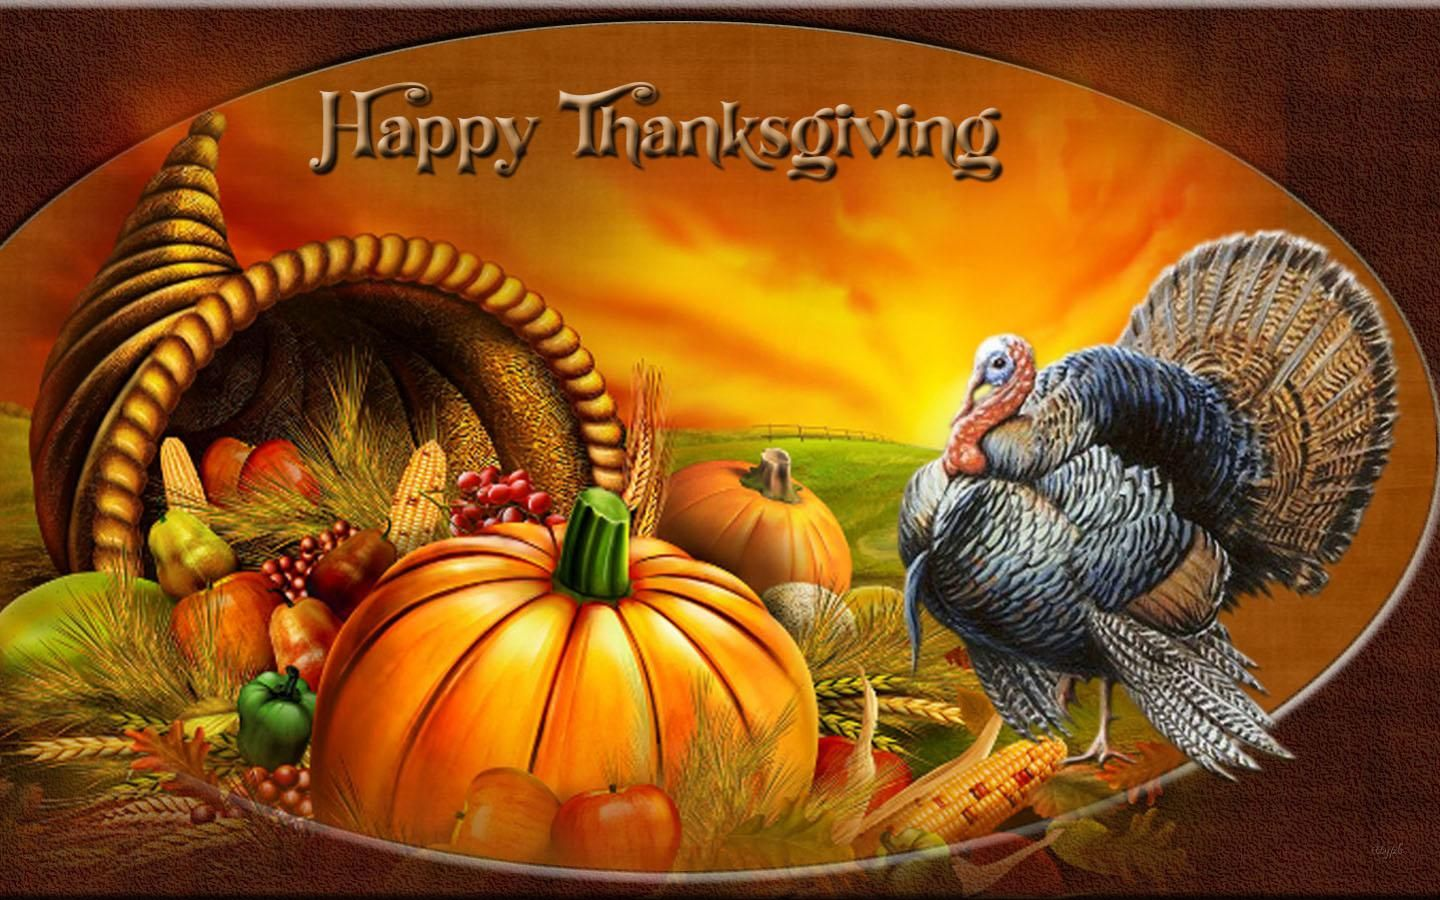 Pin on ThanksGiving Quotes Images